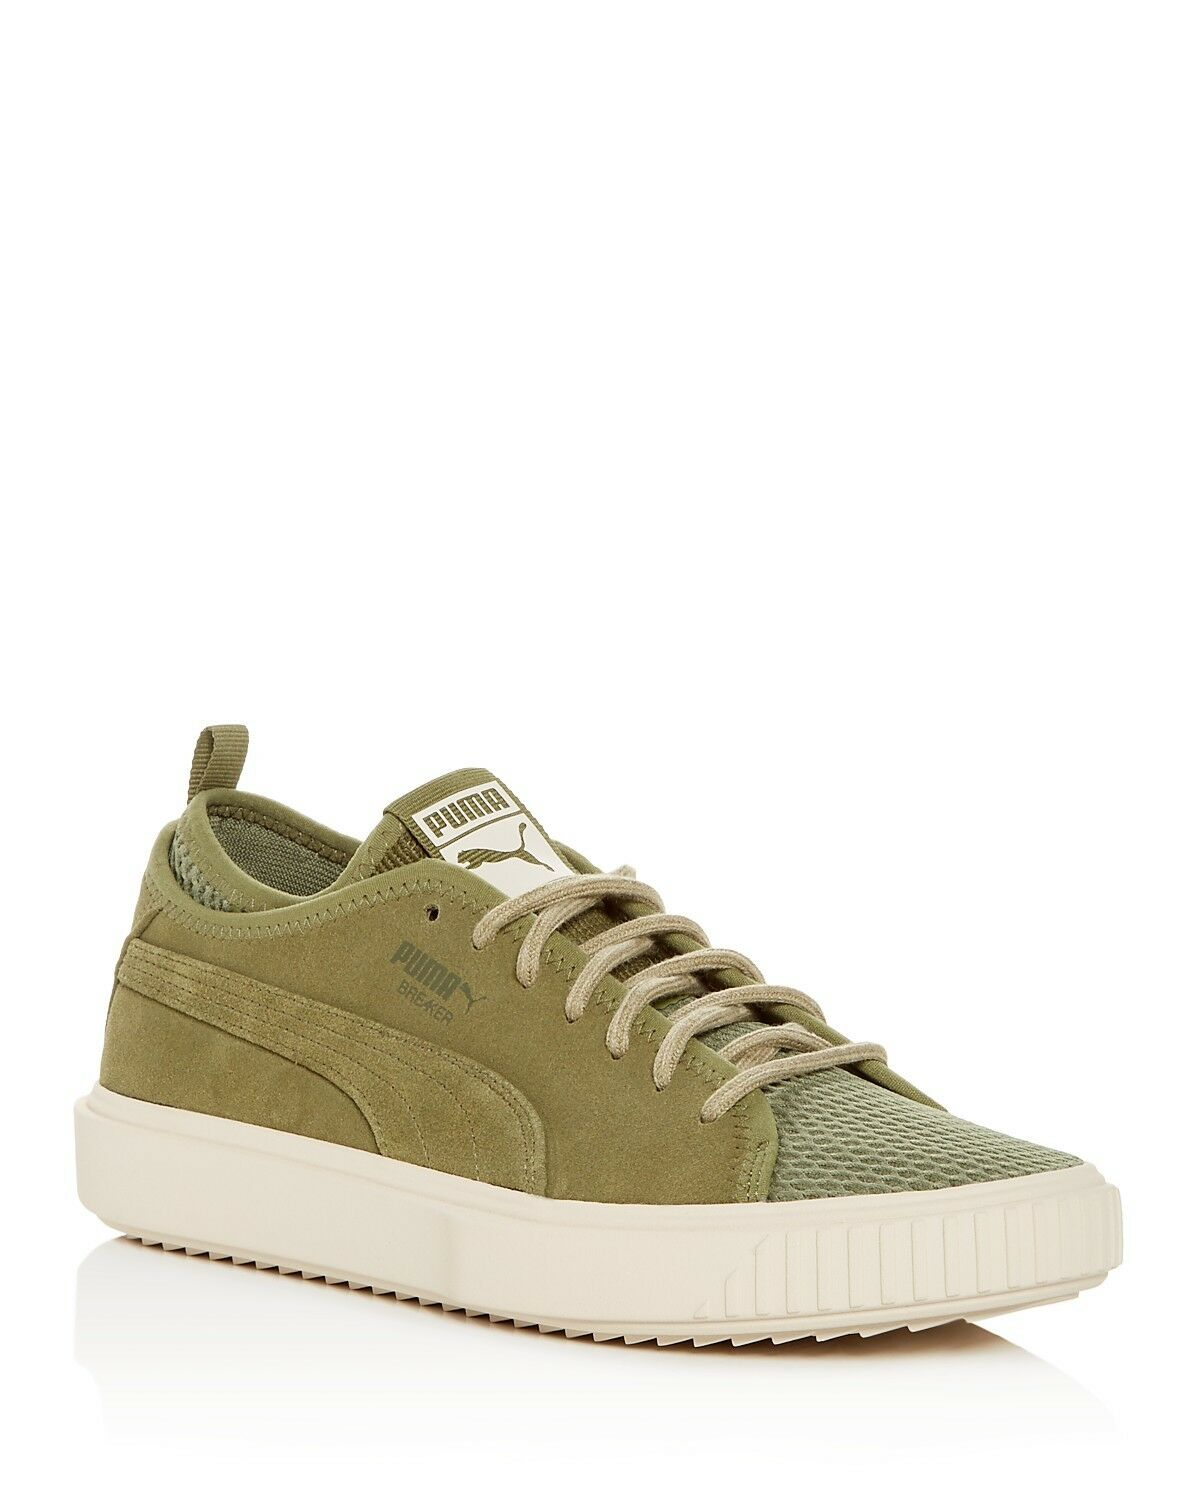 PUMA hommes Breaker Suede & Mesh Lace Up Sneakers Green